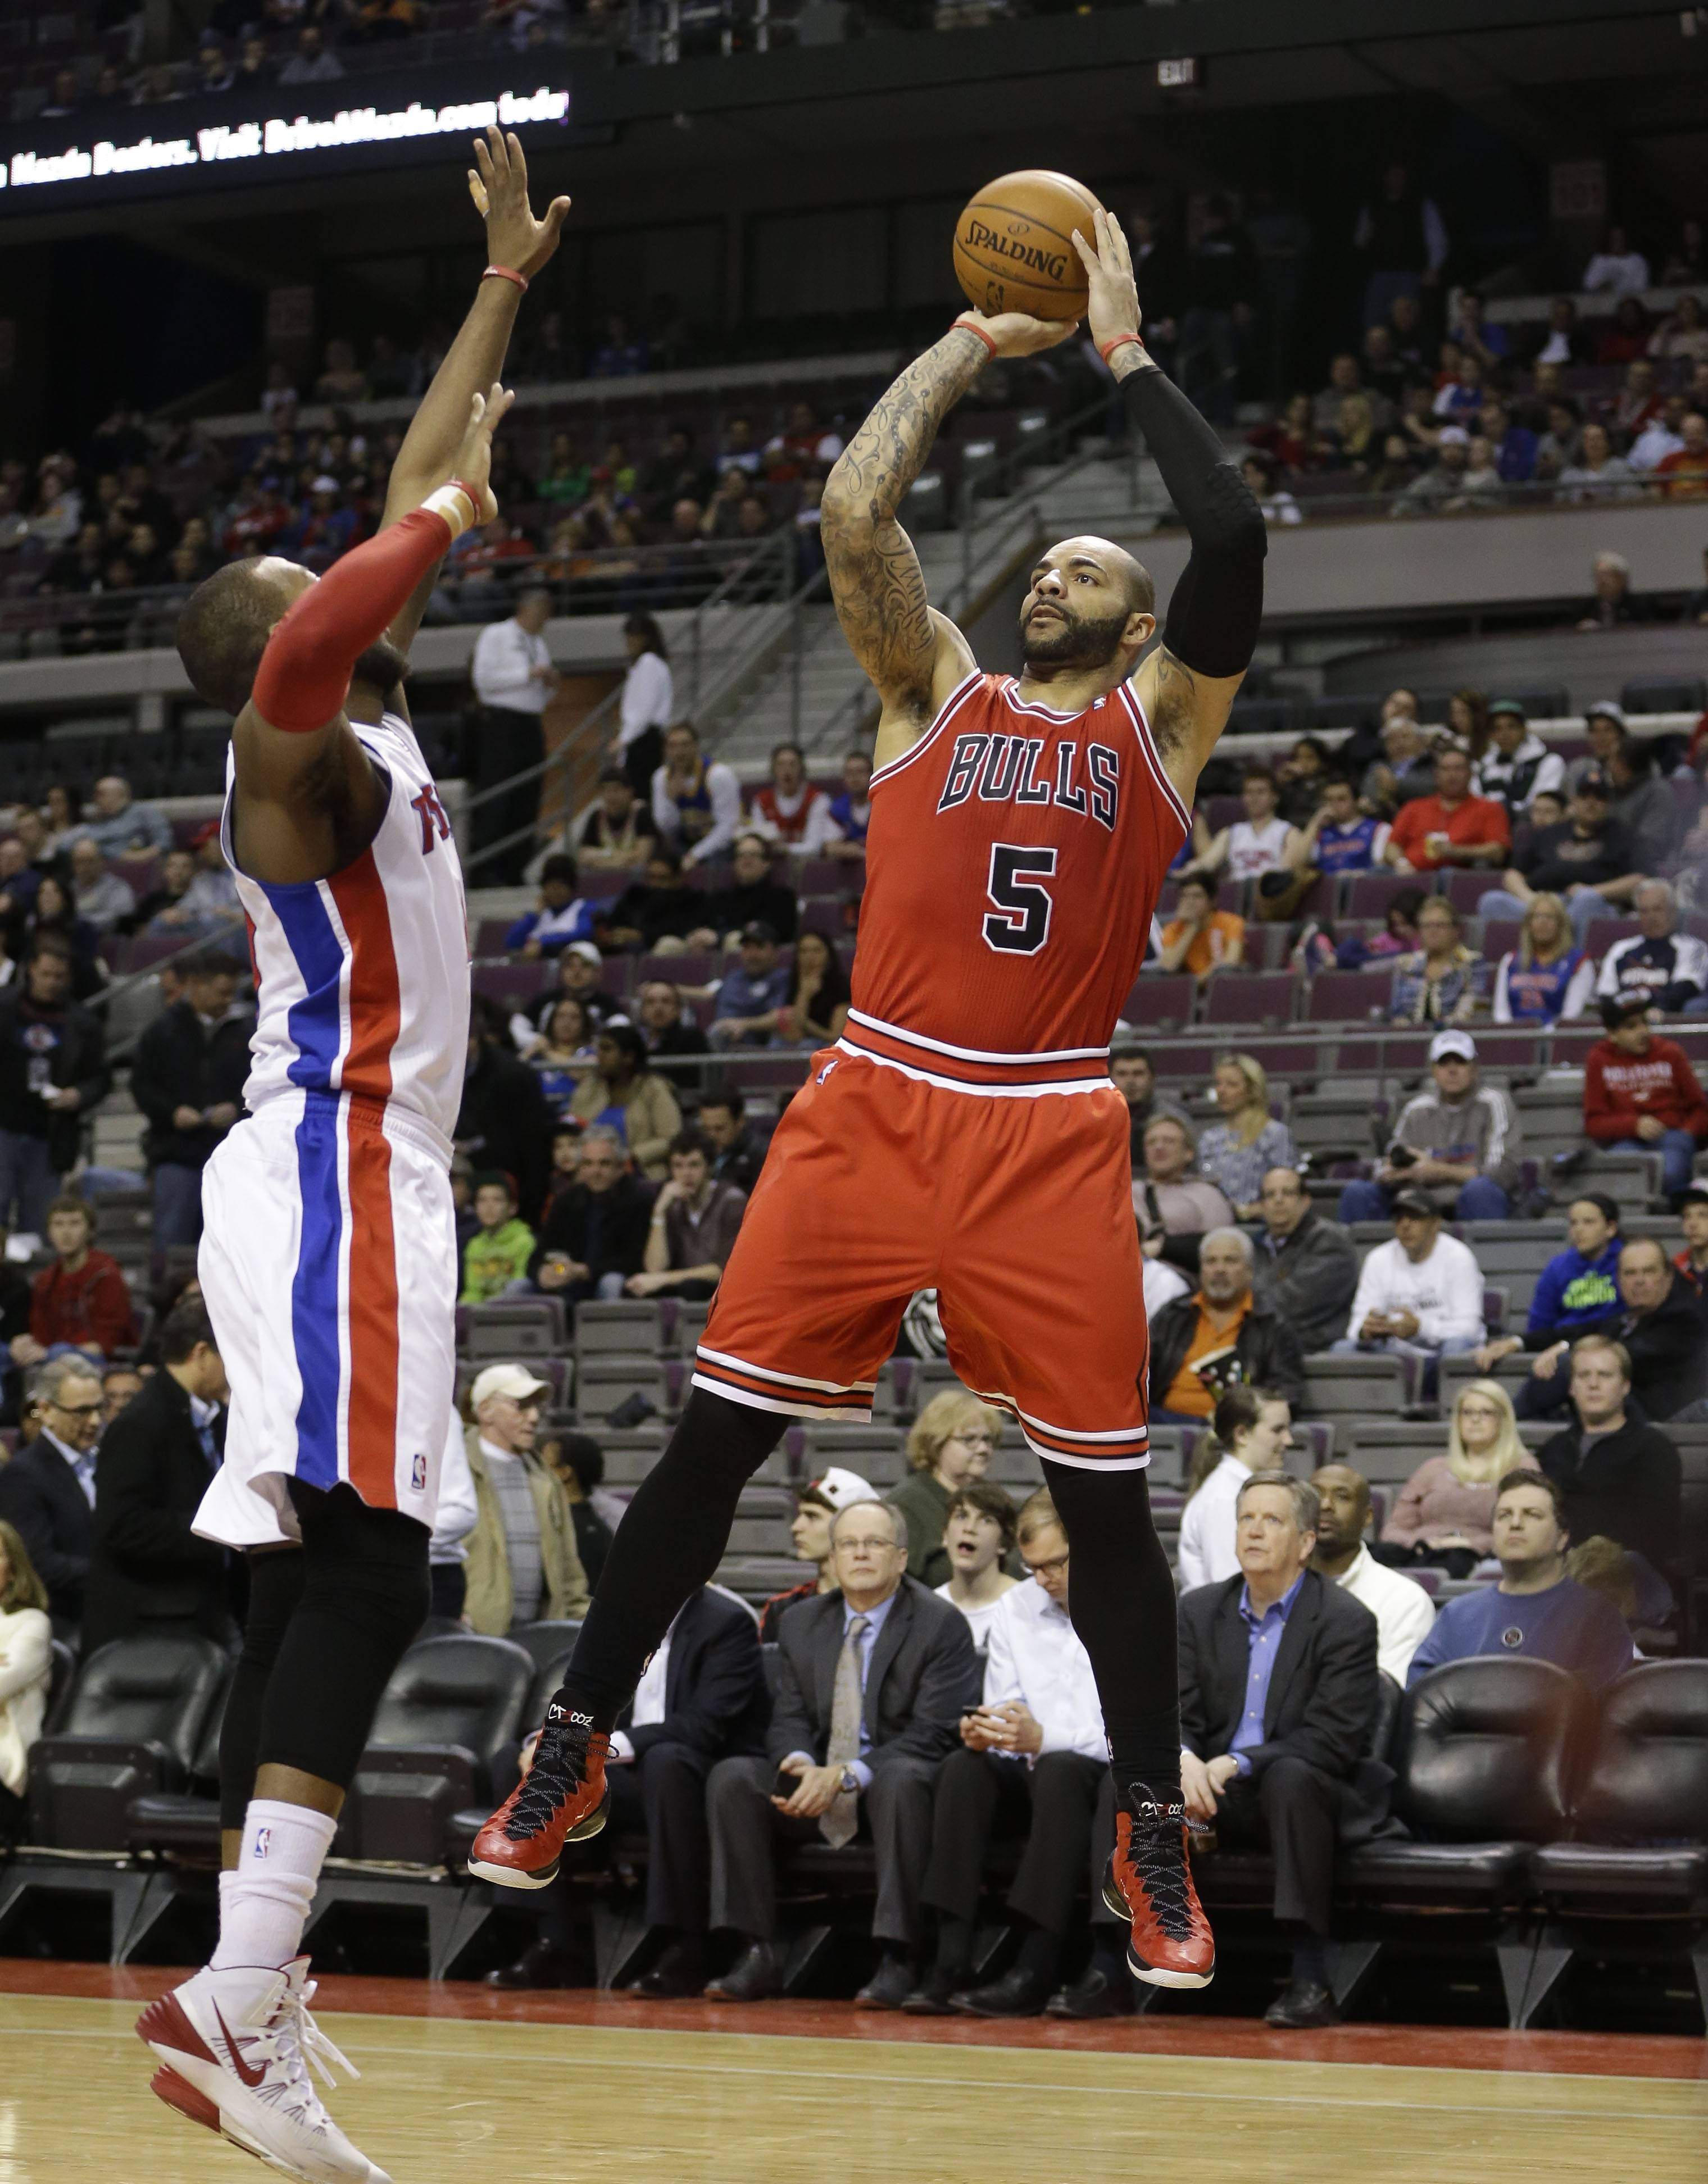 Chicago Bulls forward Carlos Boozer (5) shoots over Detroit Pistons forward Greg Monroe during the first half of an NBA basketball game in Auburn Hills, Mich., Wednesday, March 5, 2014.